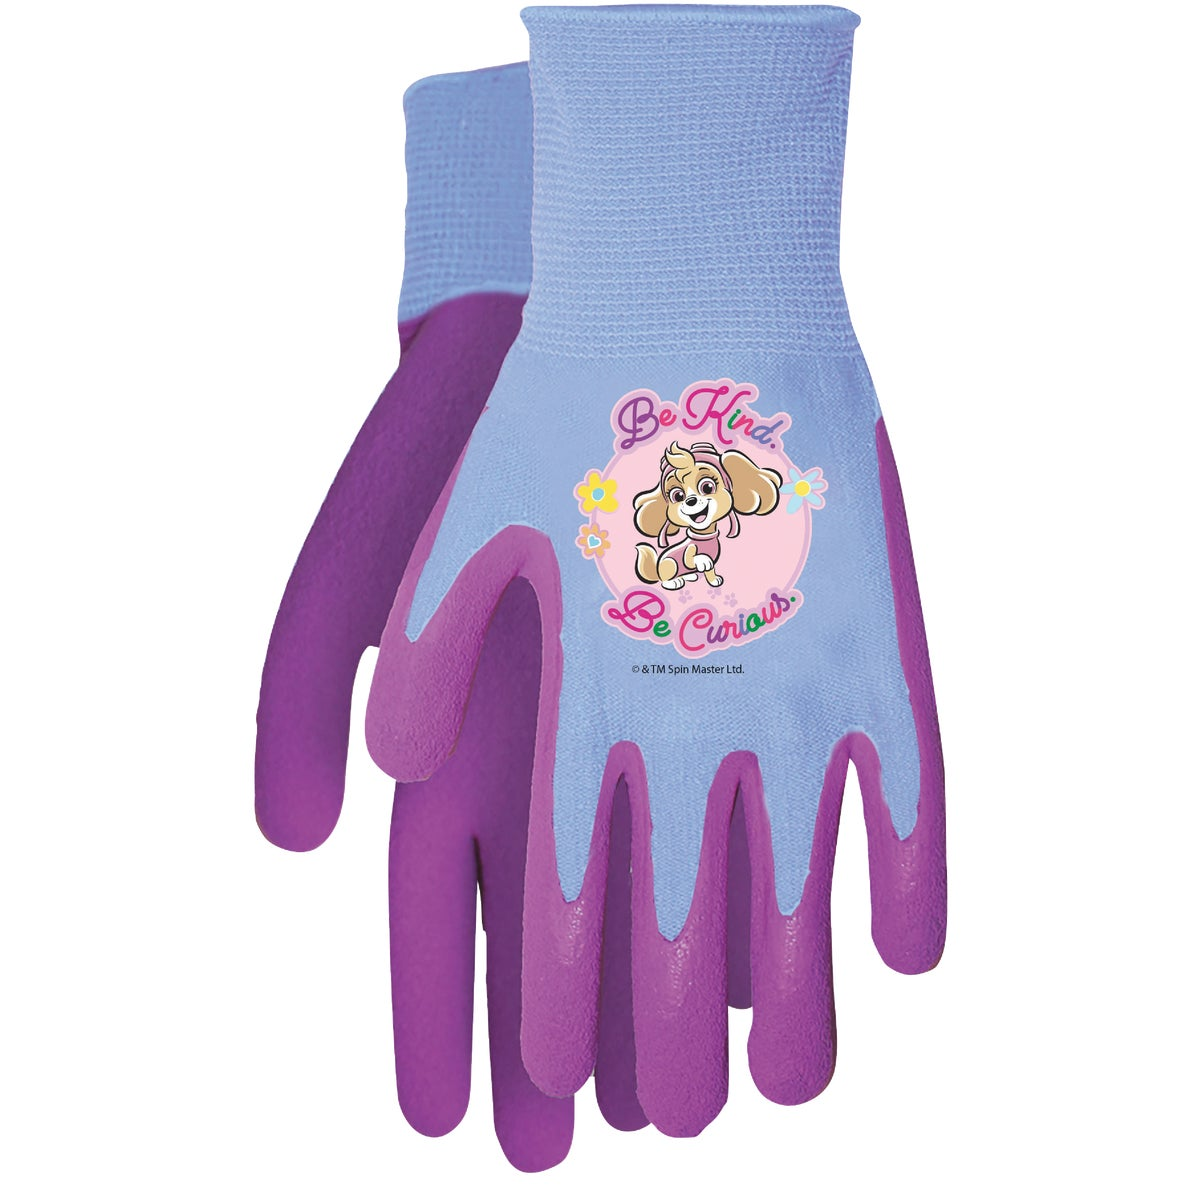 PRINCESS JERSEY GLOVE - PR102T-T-DB-12 by Midwest Quality Glov